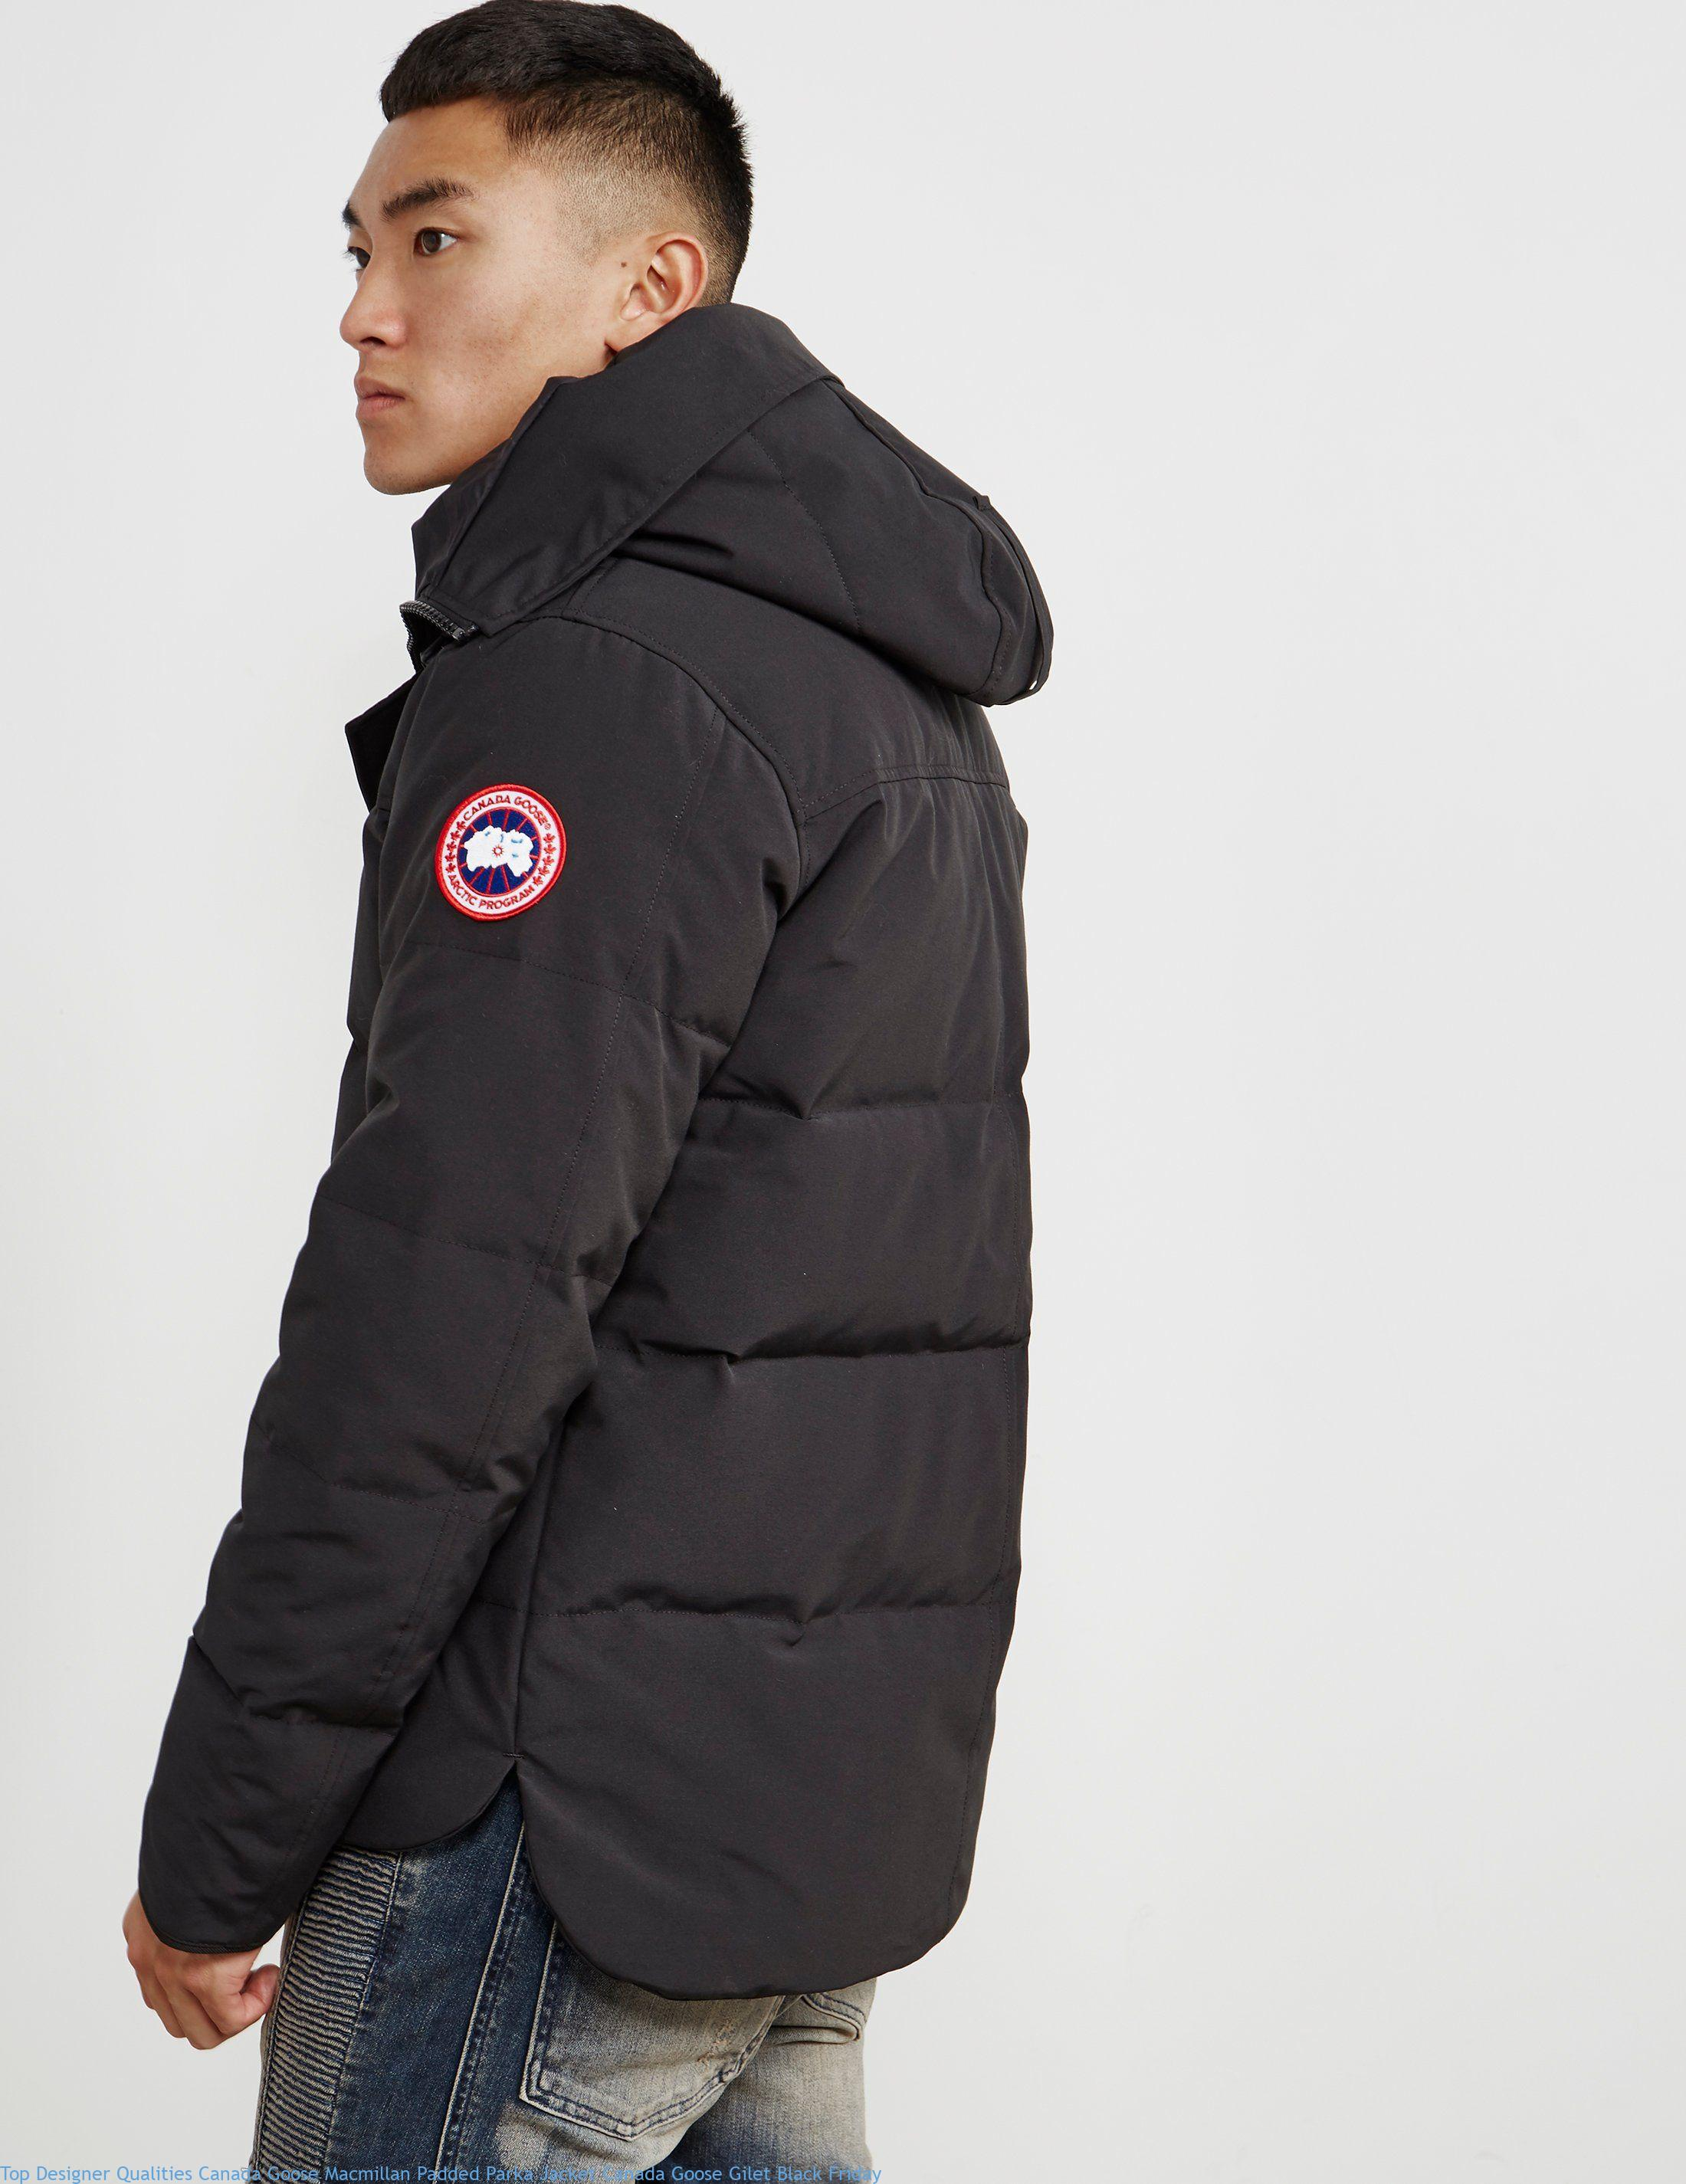 Top Designer Qualities Canada Goose Macmillan Padded Parka Jacket Canada Goose Gilet Black Friday Cheap Canada Goose Outlet Jackets Sale